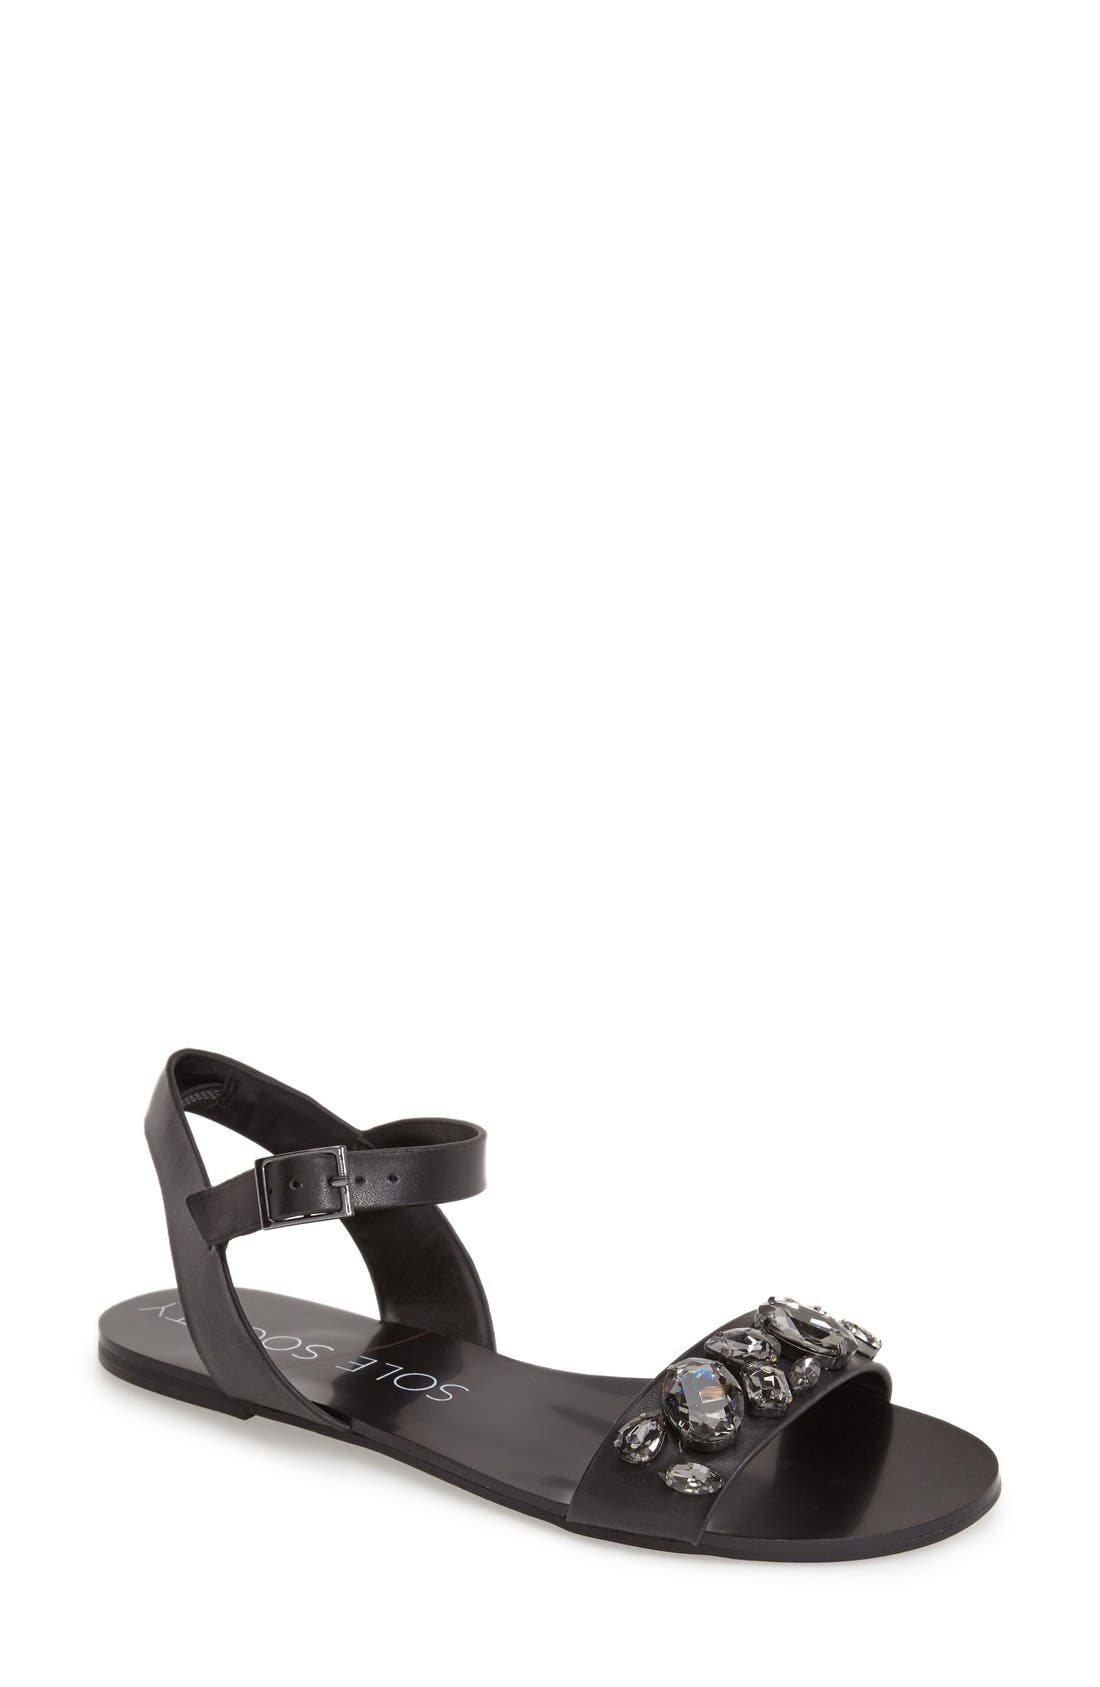 SOLE SOCIETY, 'Gemma' Crystal Ankle Strap Sandal, Main thumbnail 1, color, 001